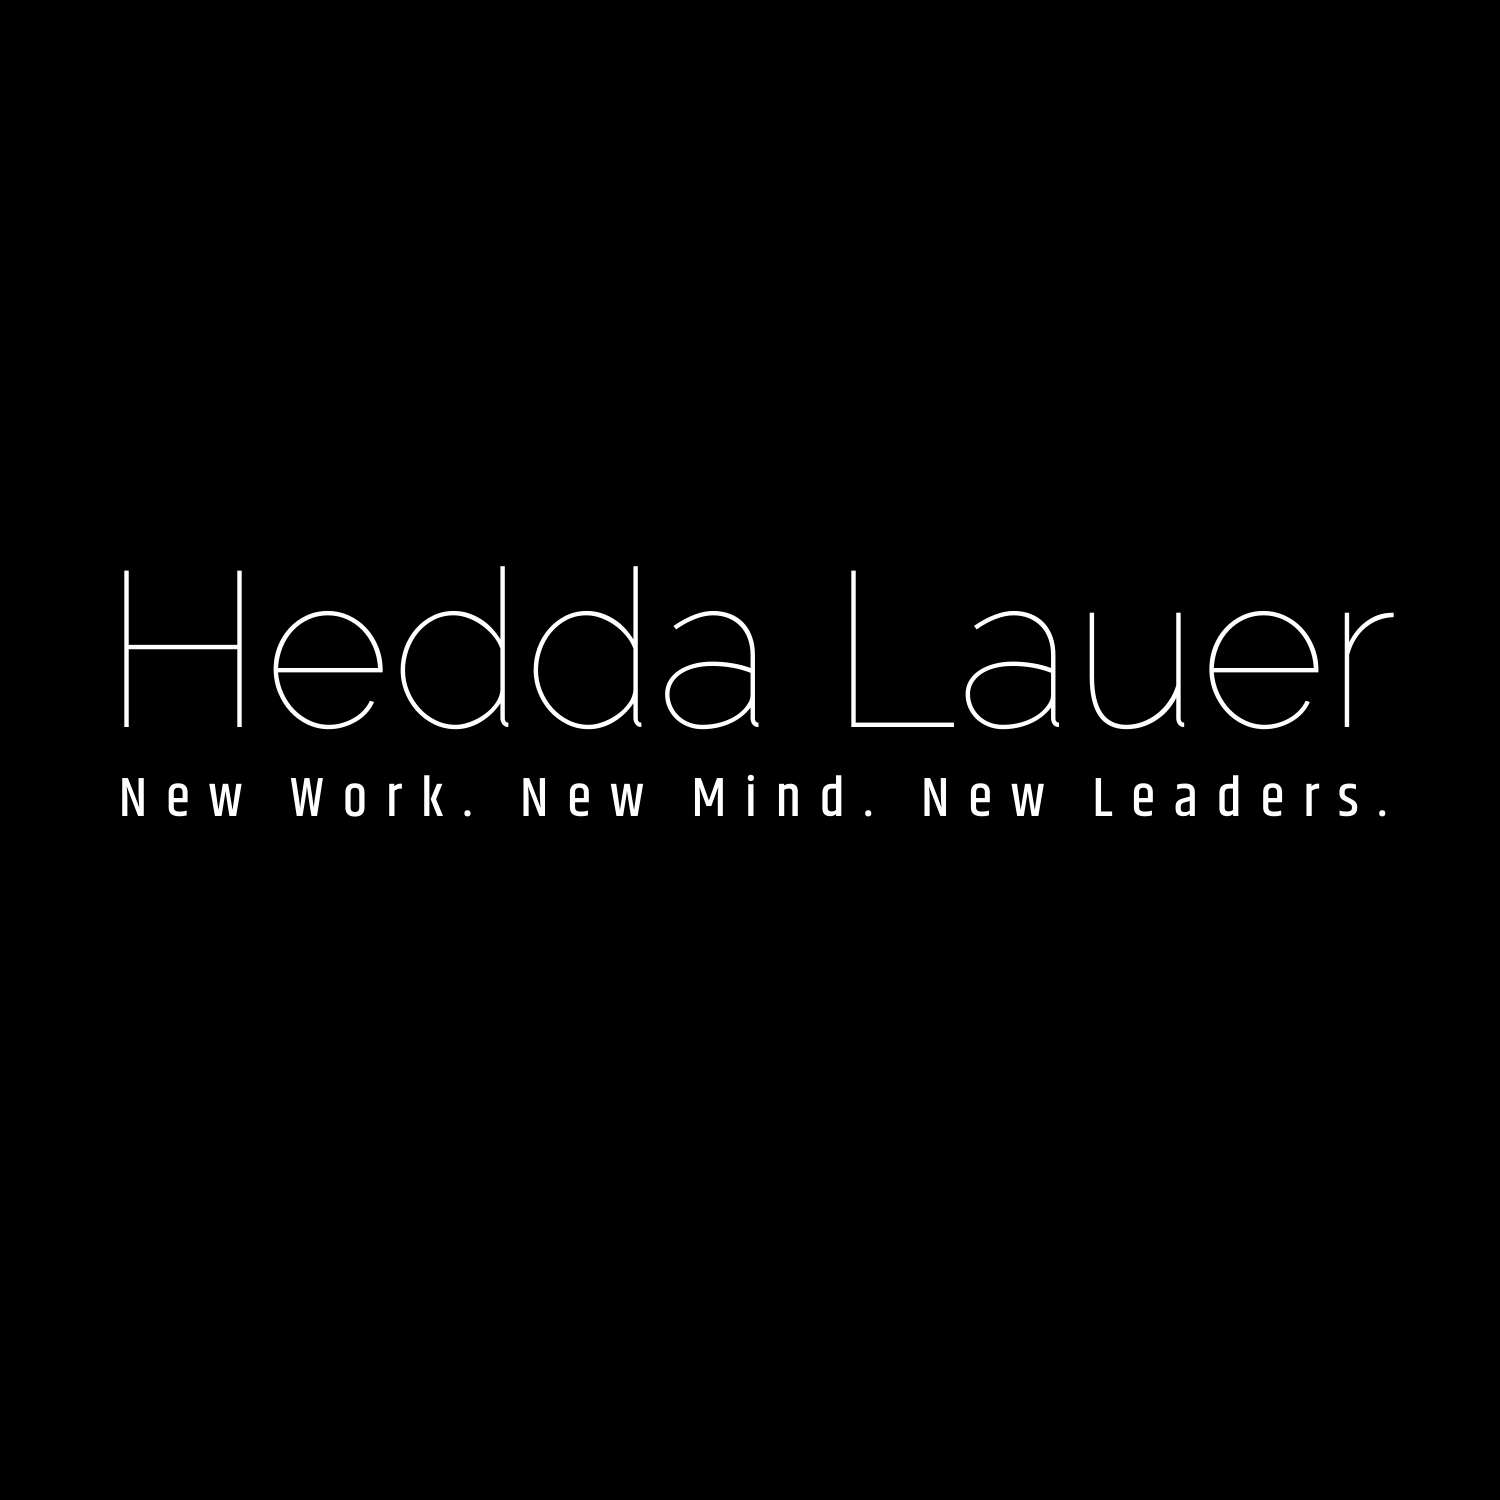 Hedda Lauer Consulting & Coaching